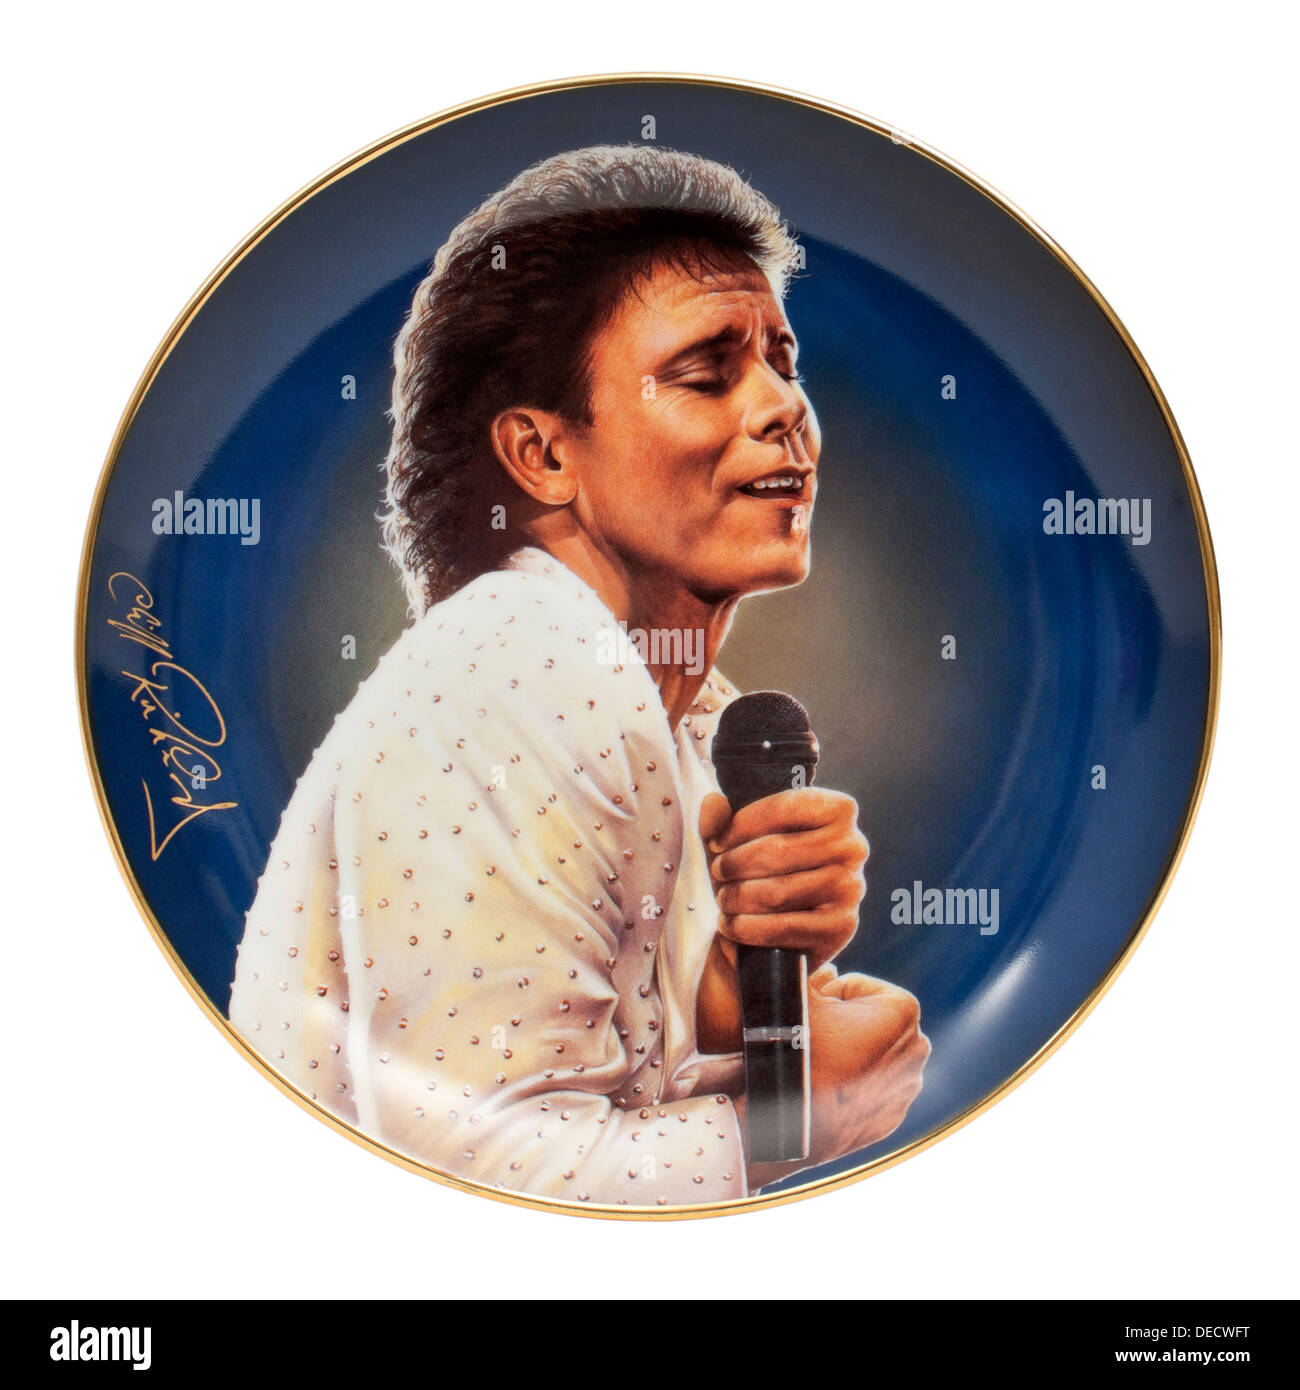 'A Glittering Performance' from the 'Forty Glorious Years' series of 12 porcelain plates of Cliff Richard by Simon Mendez - Stock Image